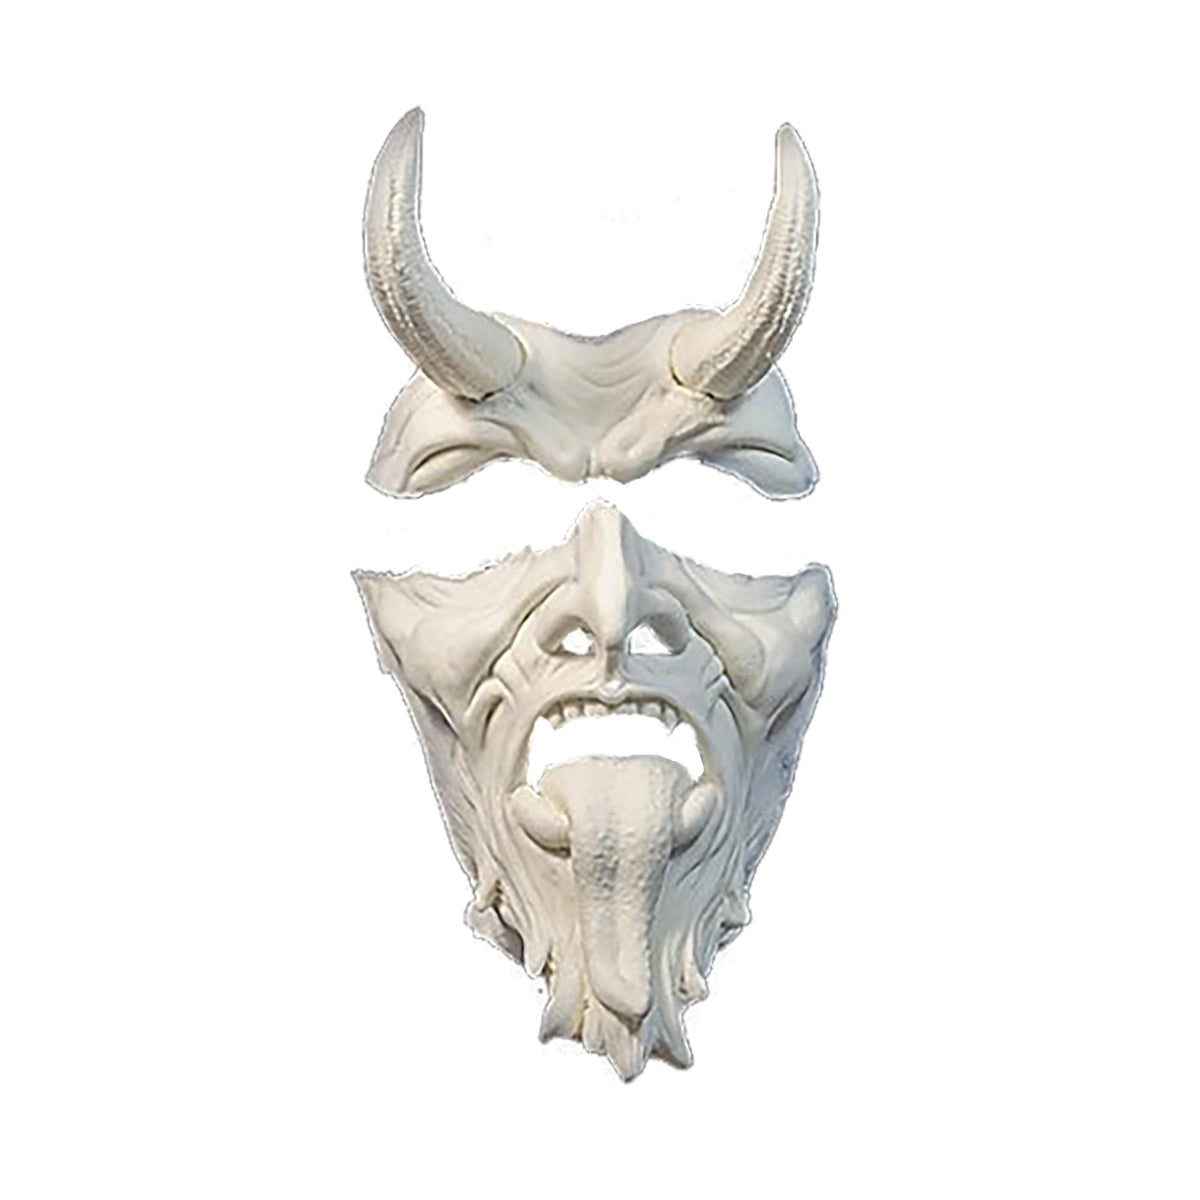 Woochie Foam Latex Krampus 1 Appliance